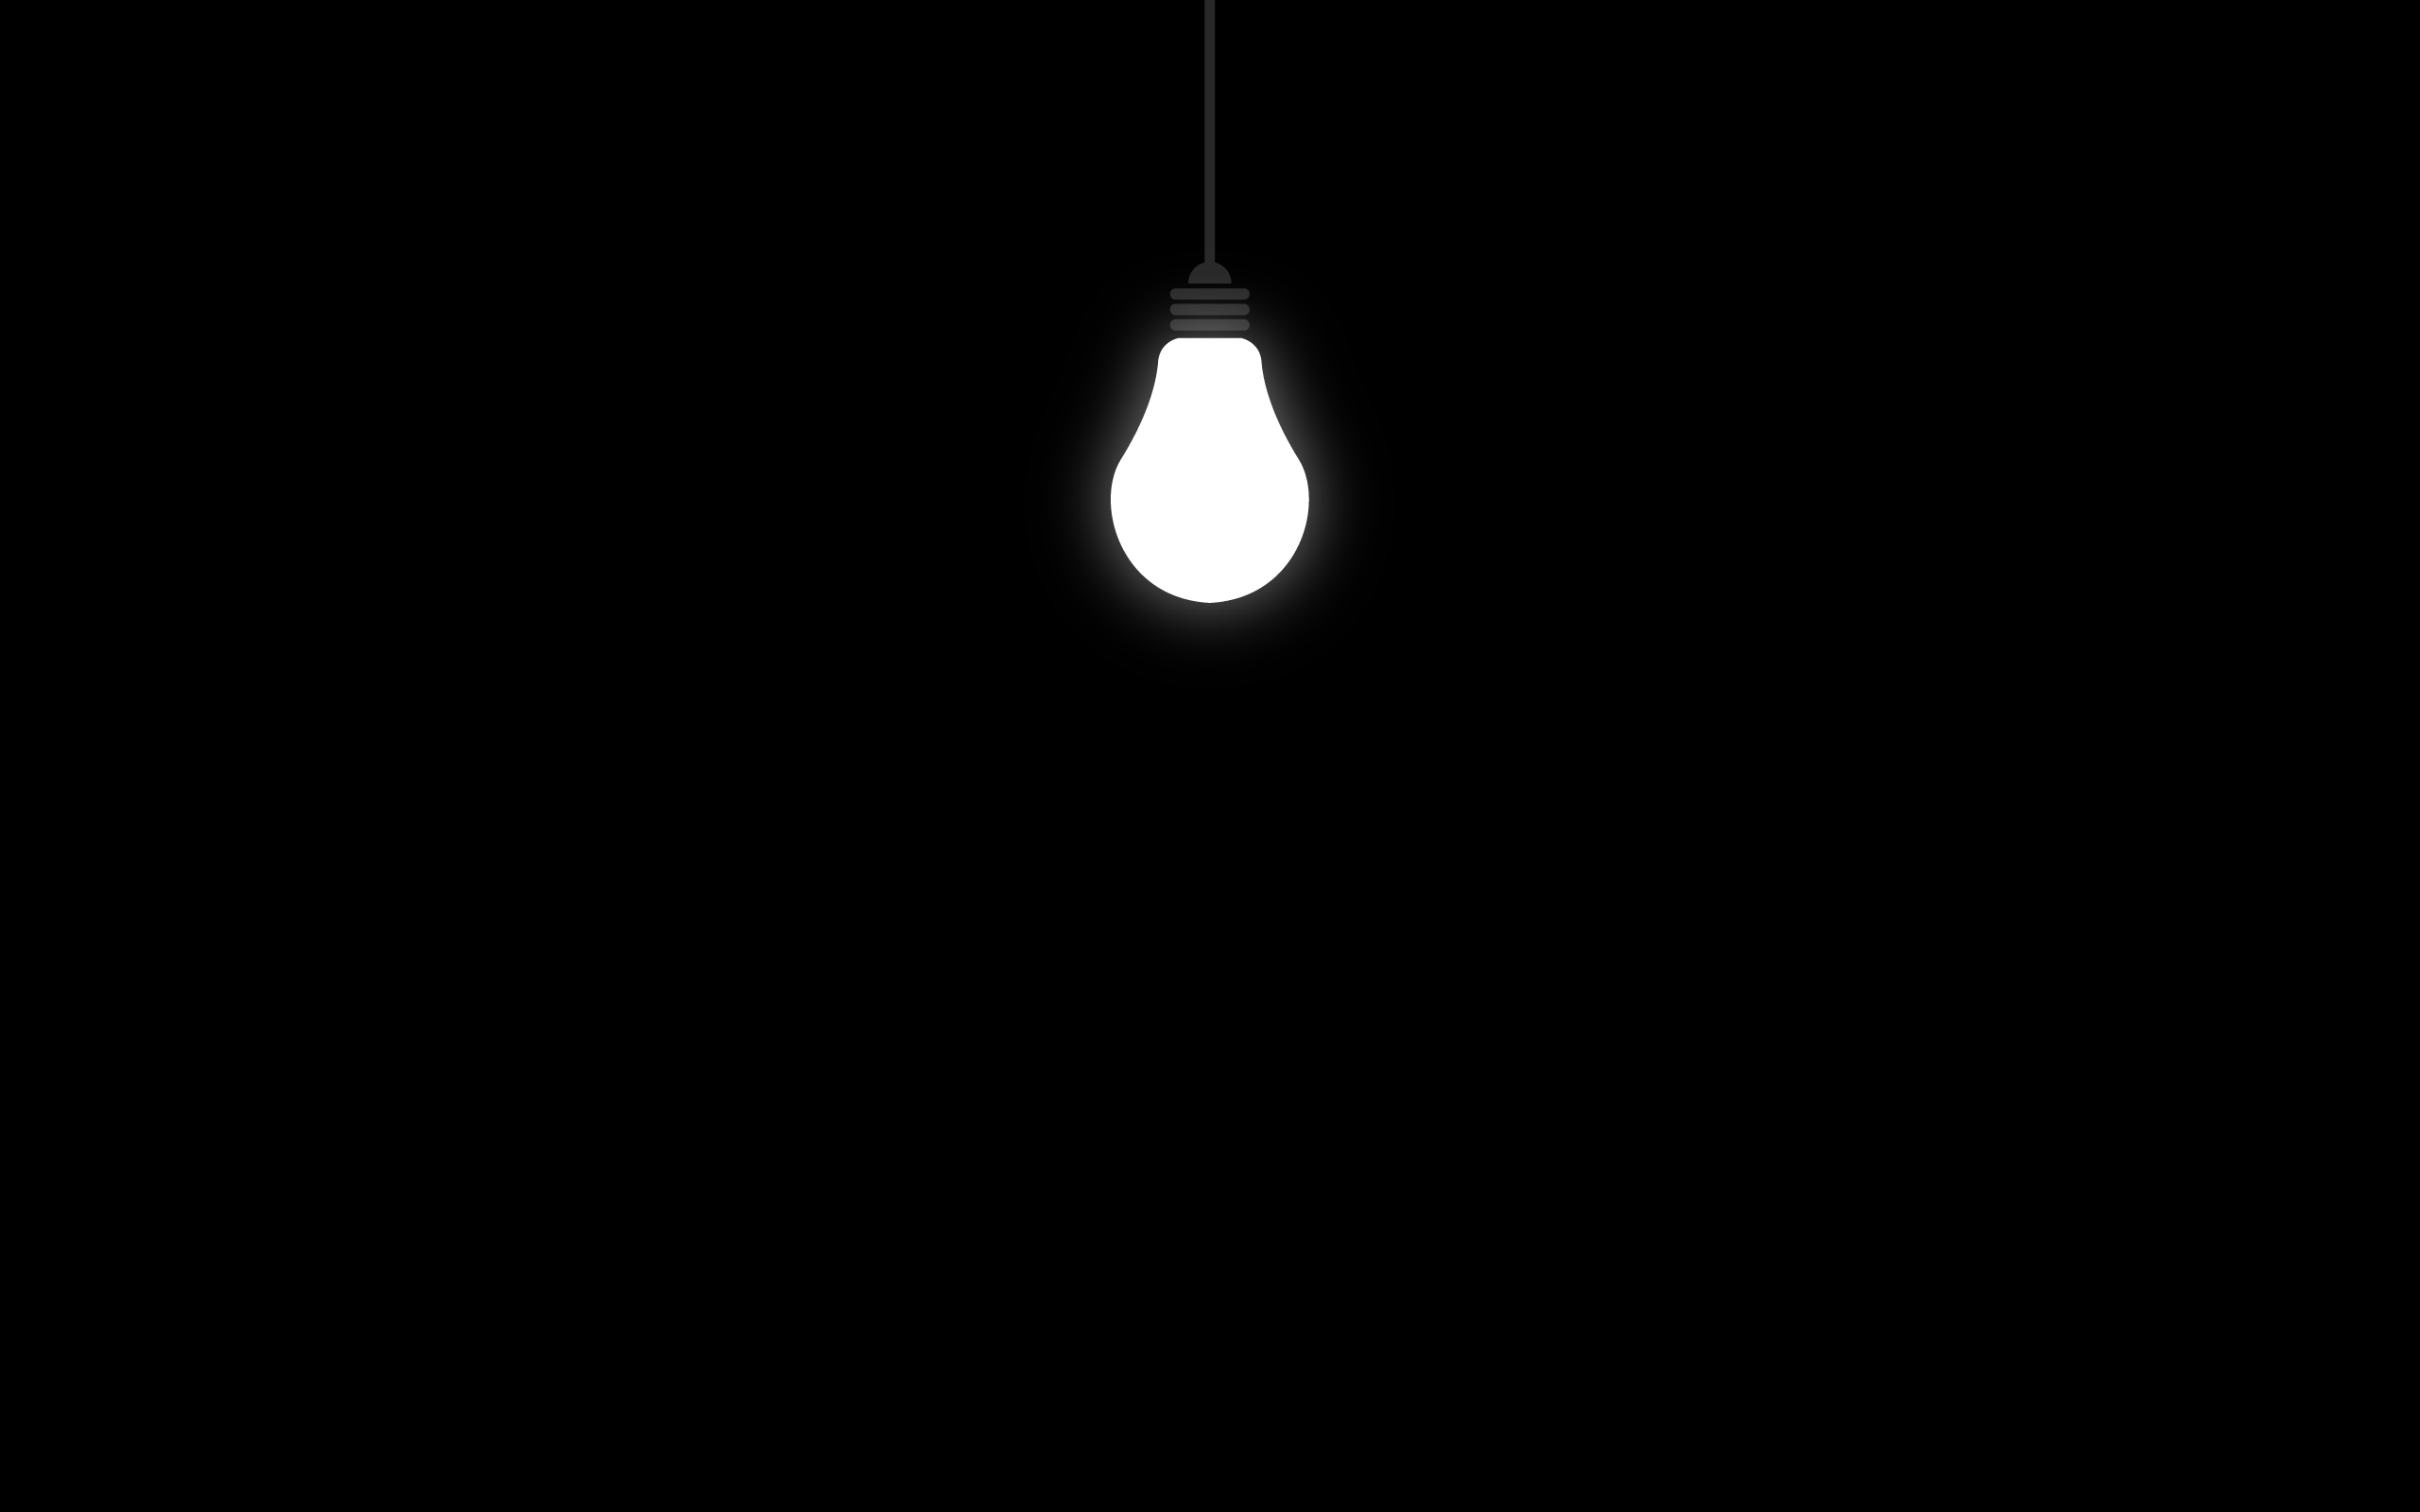 Simple Black And White Wallpapers Top Free Simple Black